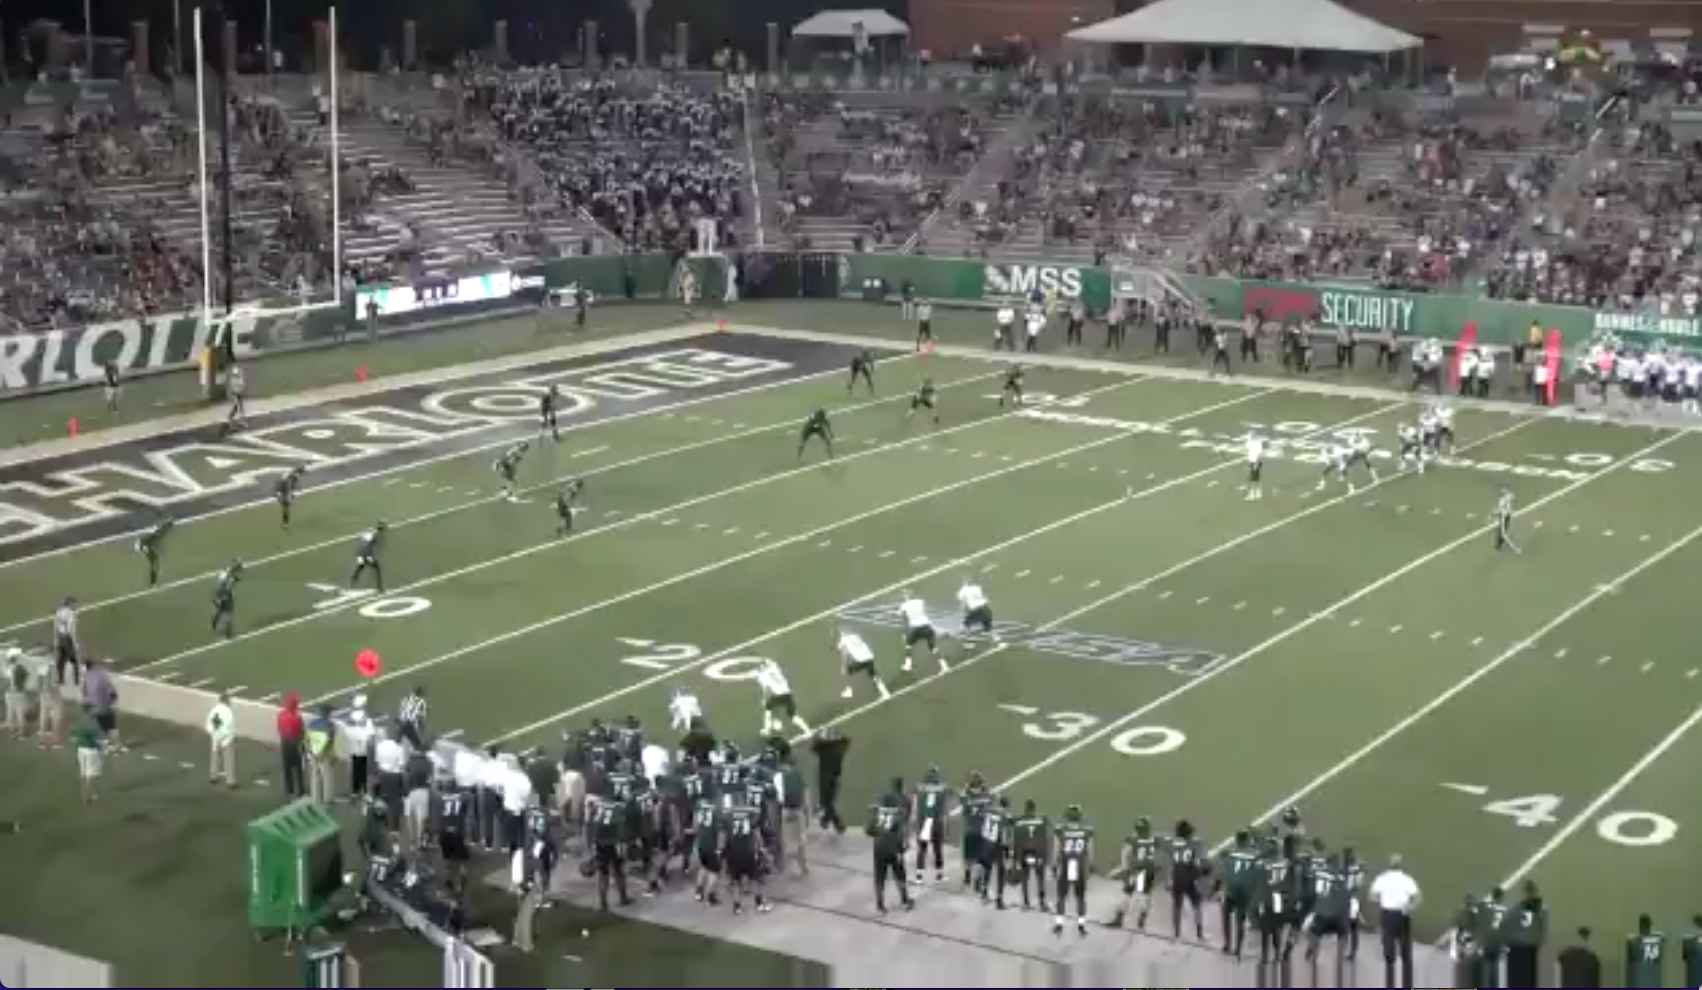 Eastern Michigan kicked off from the opposing 20 thanks to three personal foul penalties.